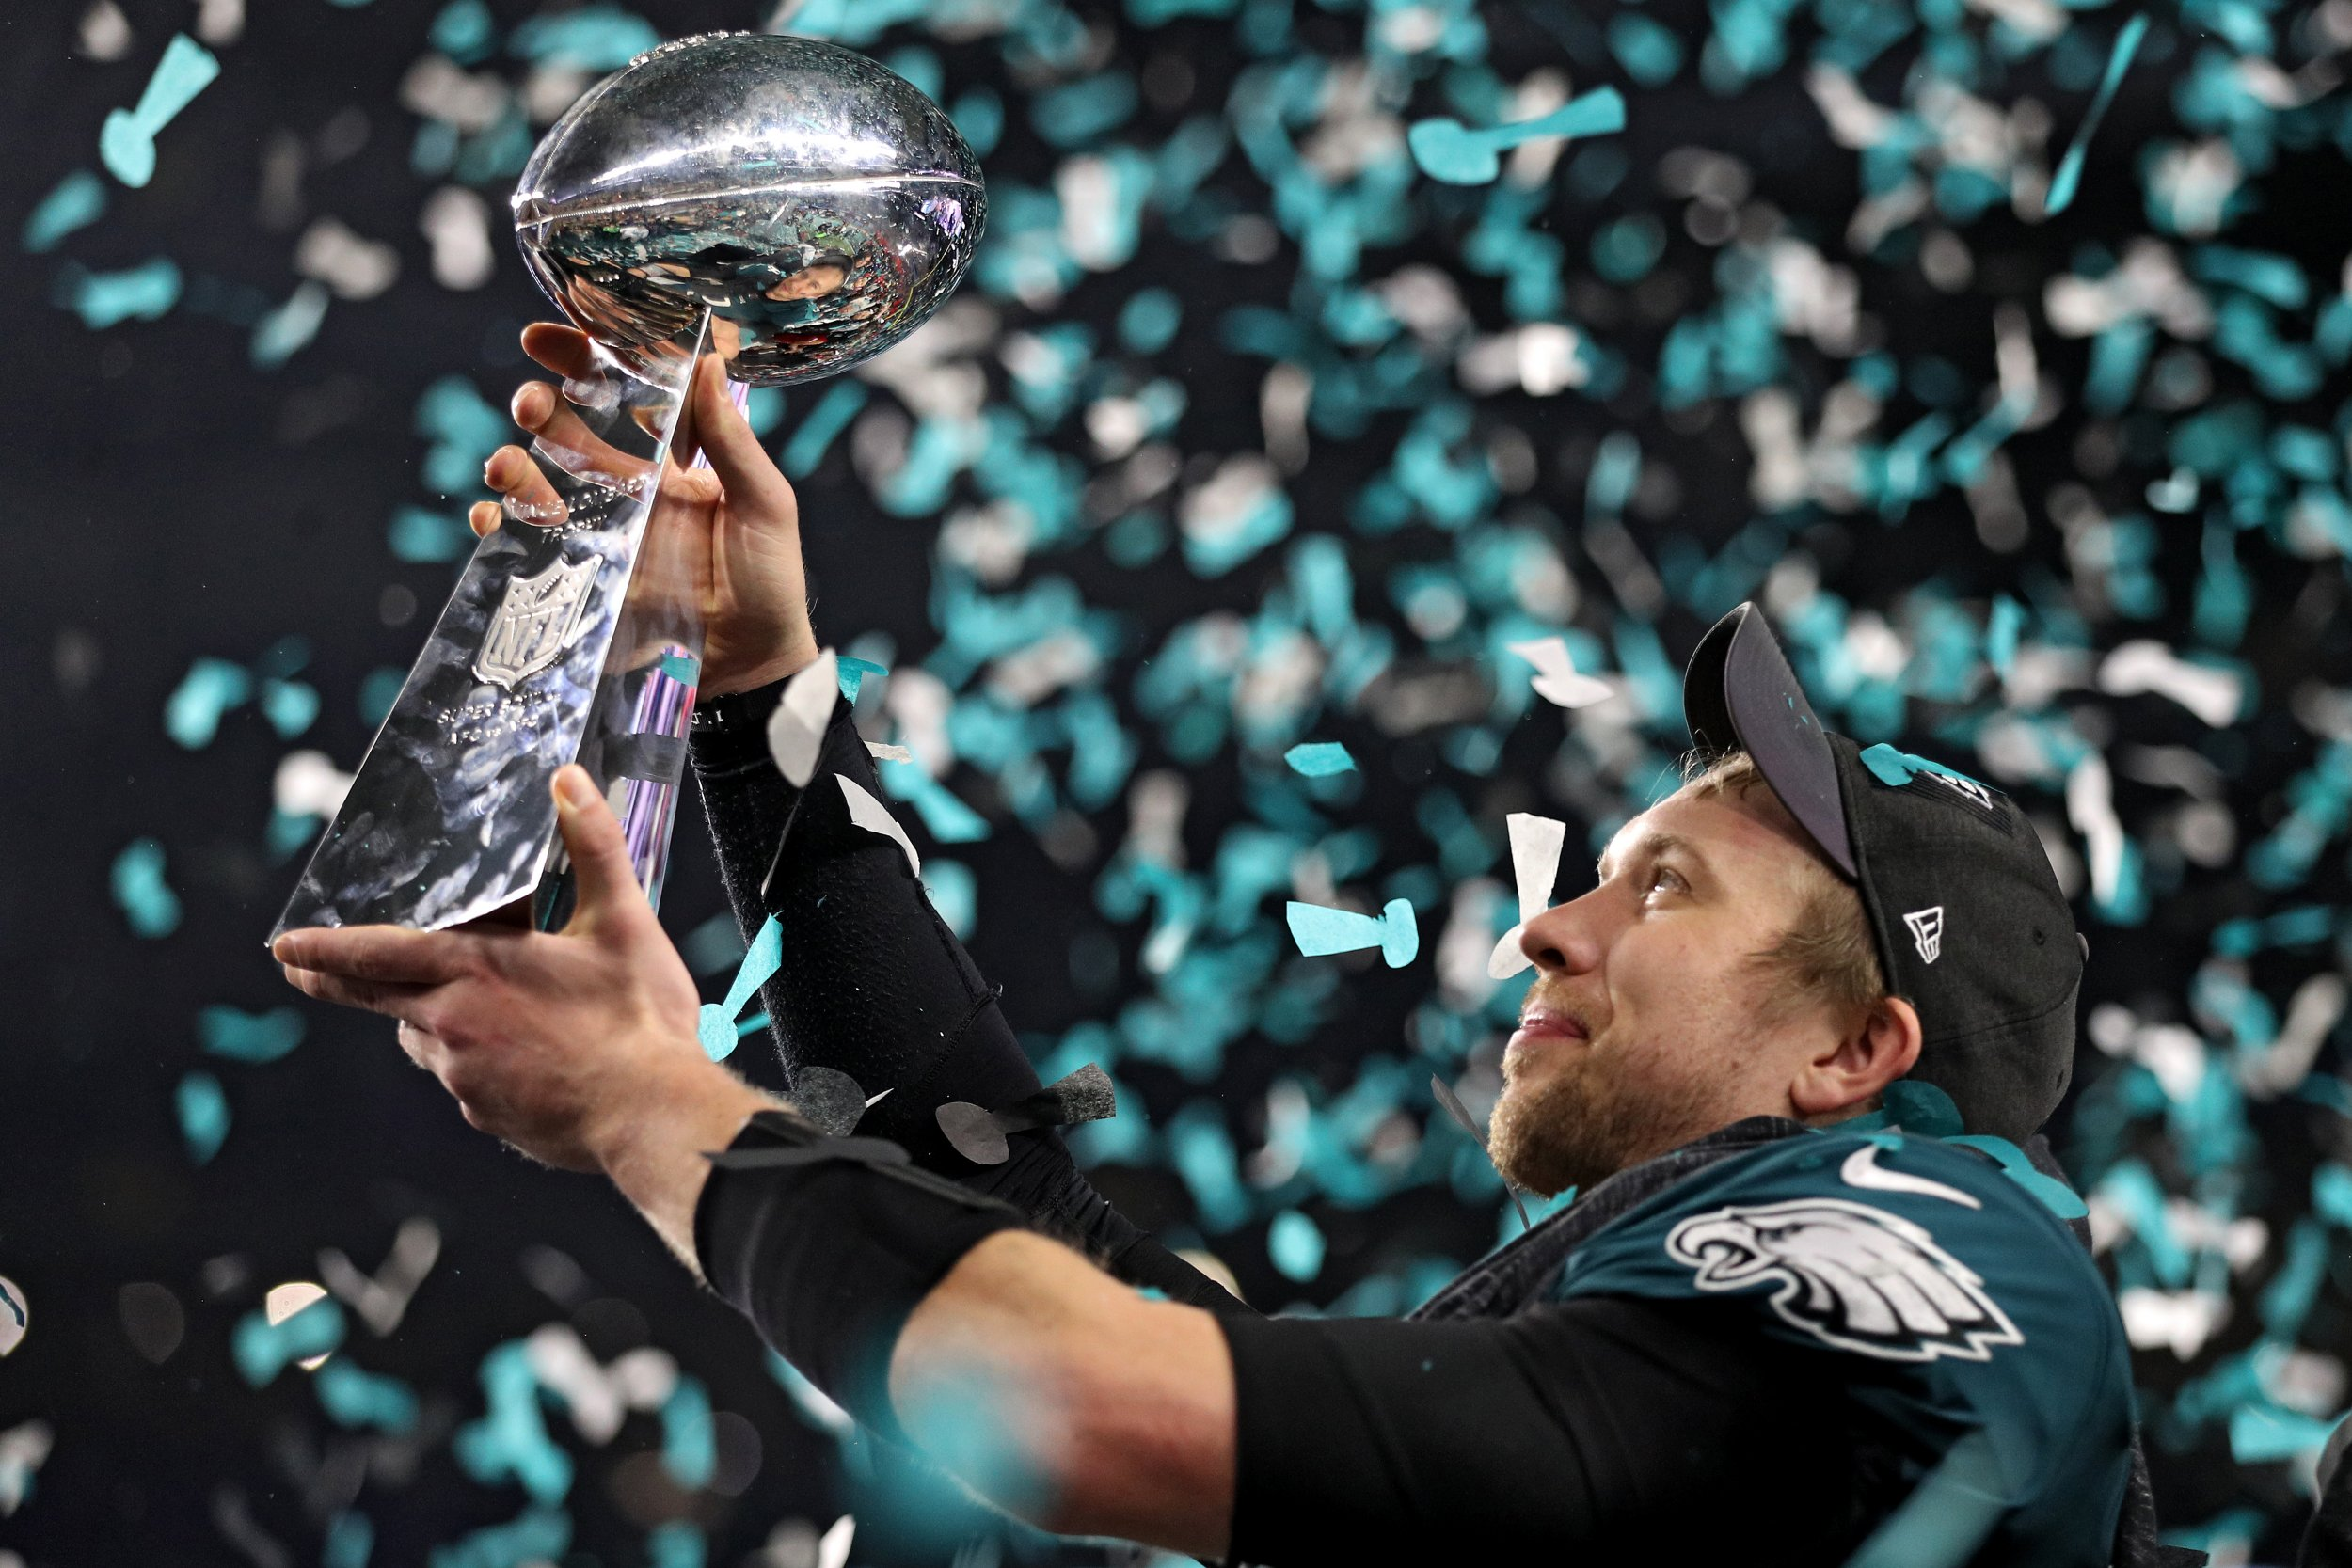 089ff7c4d28 NFL TV Schedule: What time, TV Channel is the Philadelphia Eagles vs.  Atlanta Falcons Game 2018? Odds, Livestream, Live Score Updates